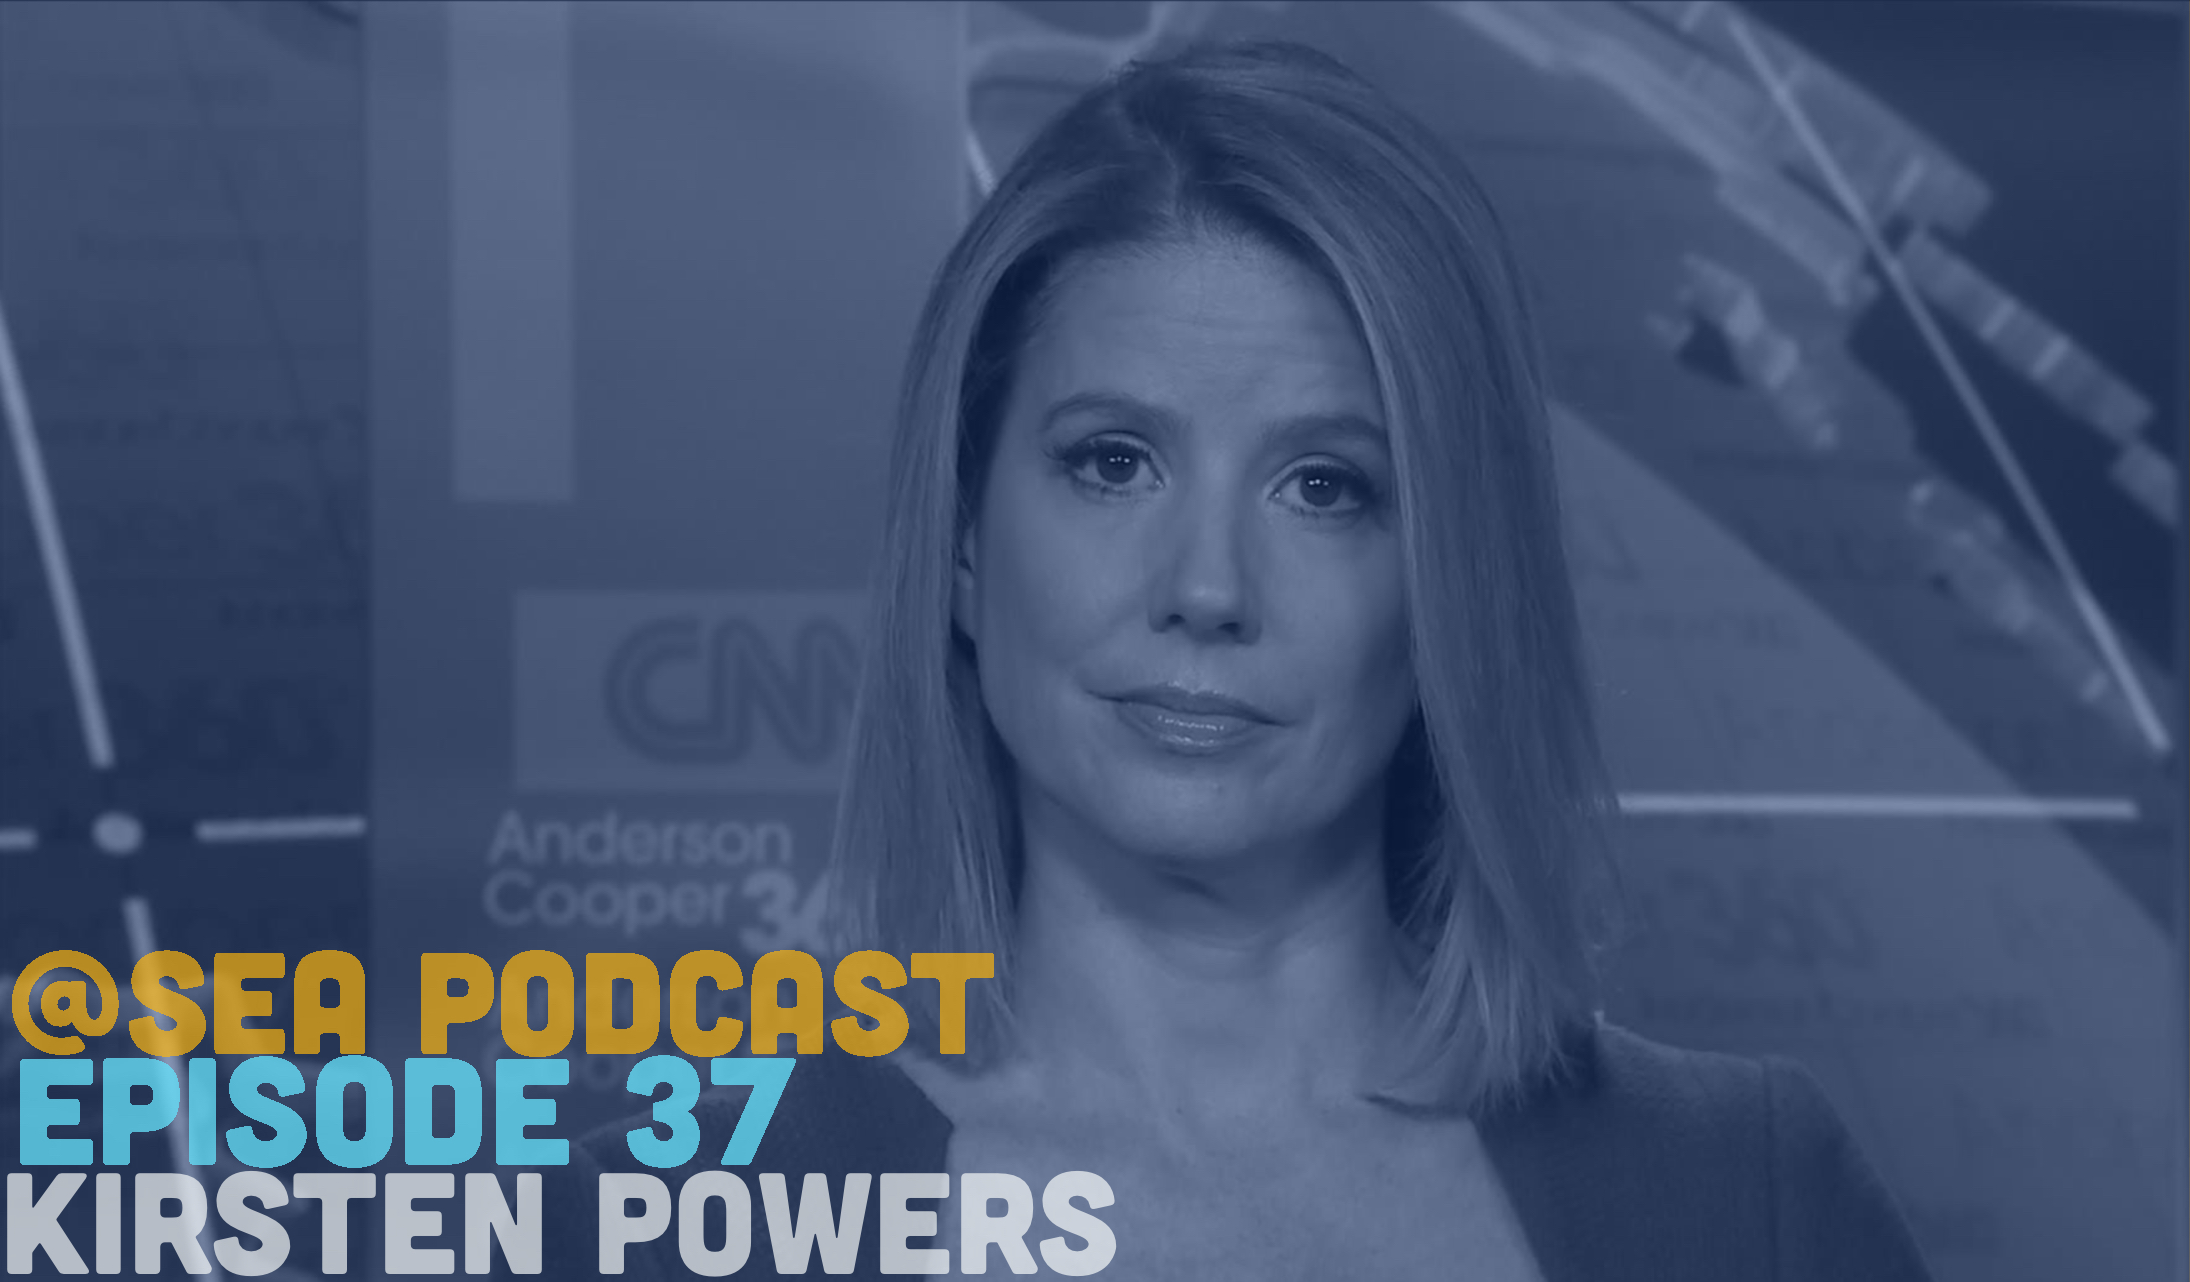 @ Sea Podcast #37: Kirsten Powers